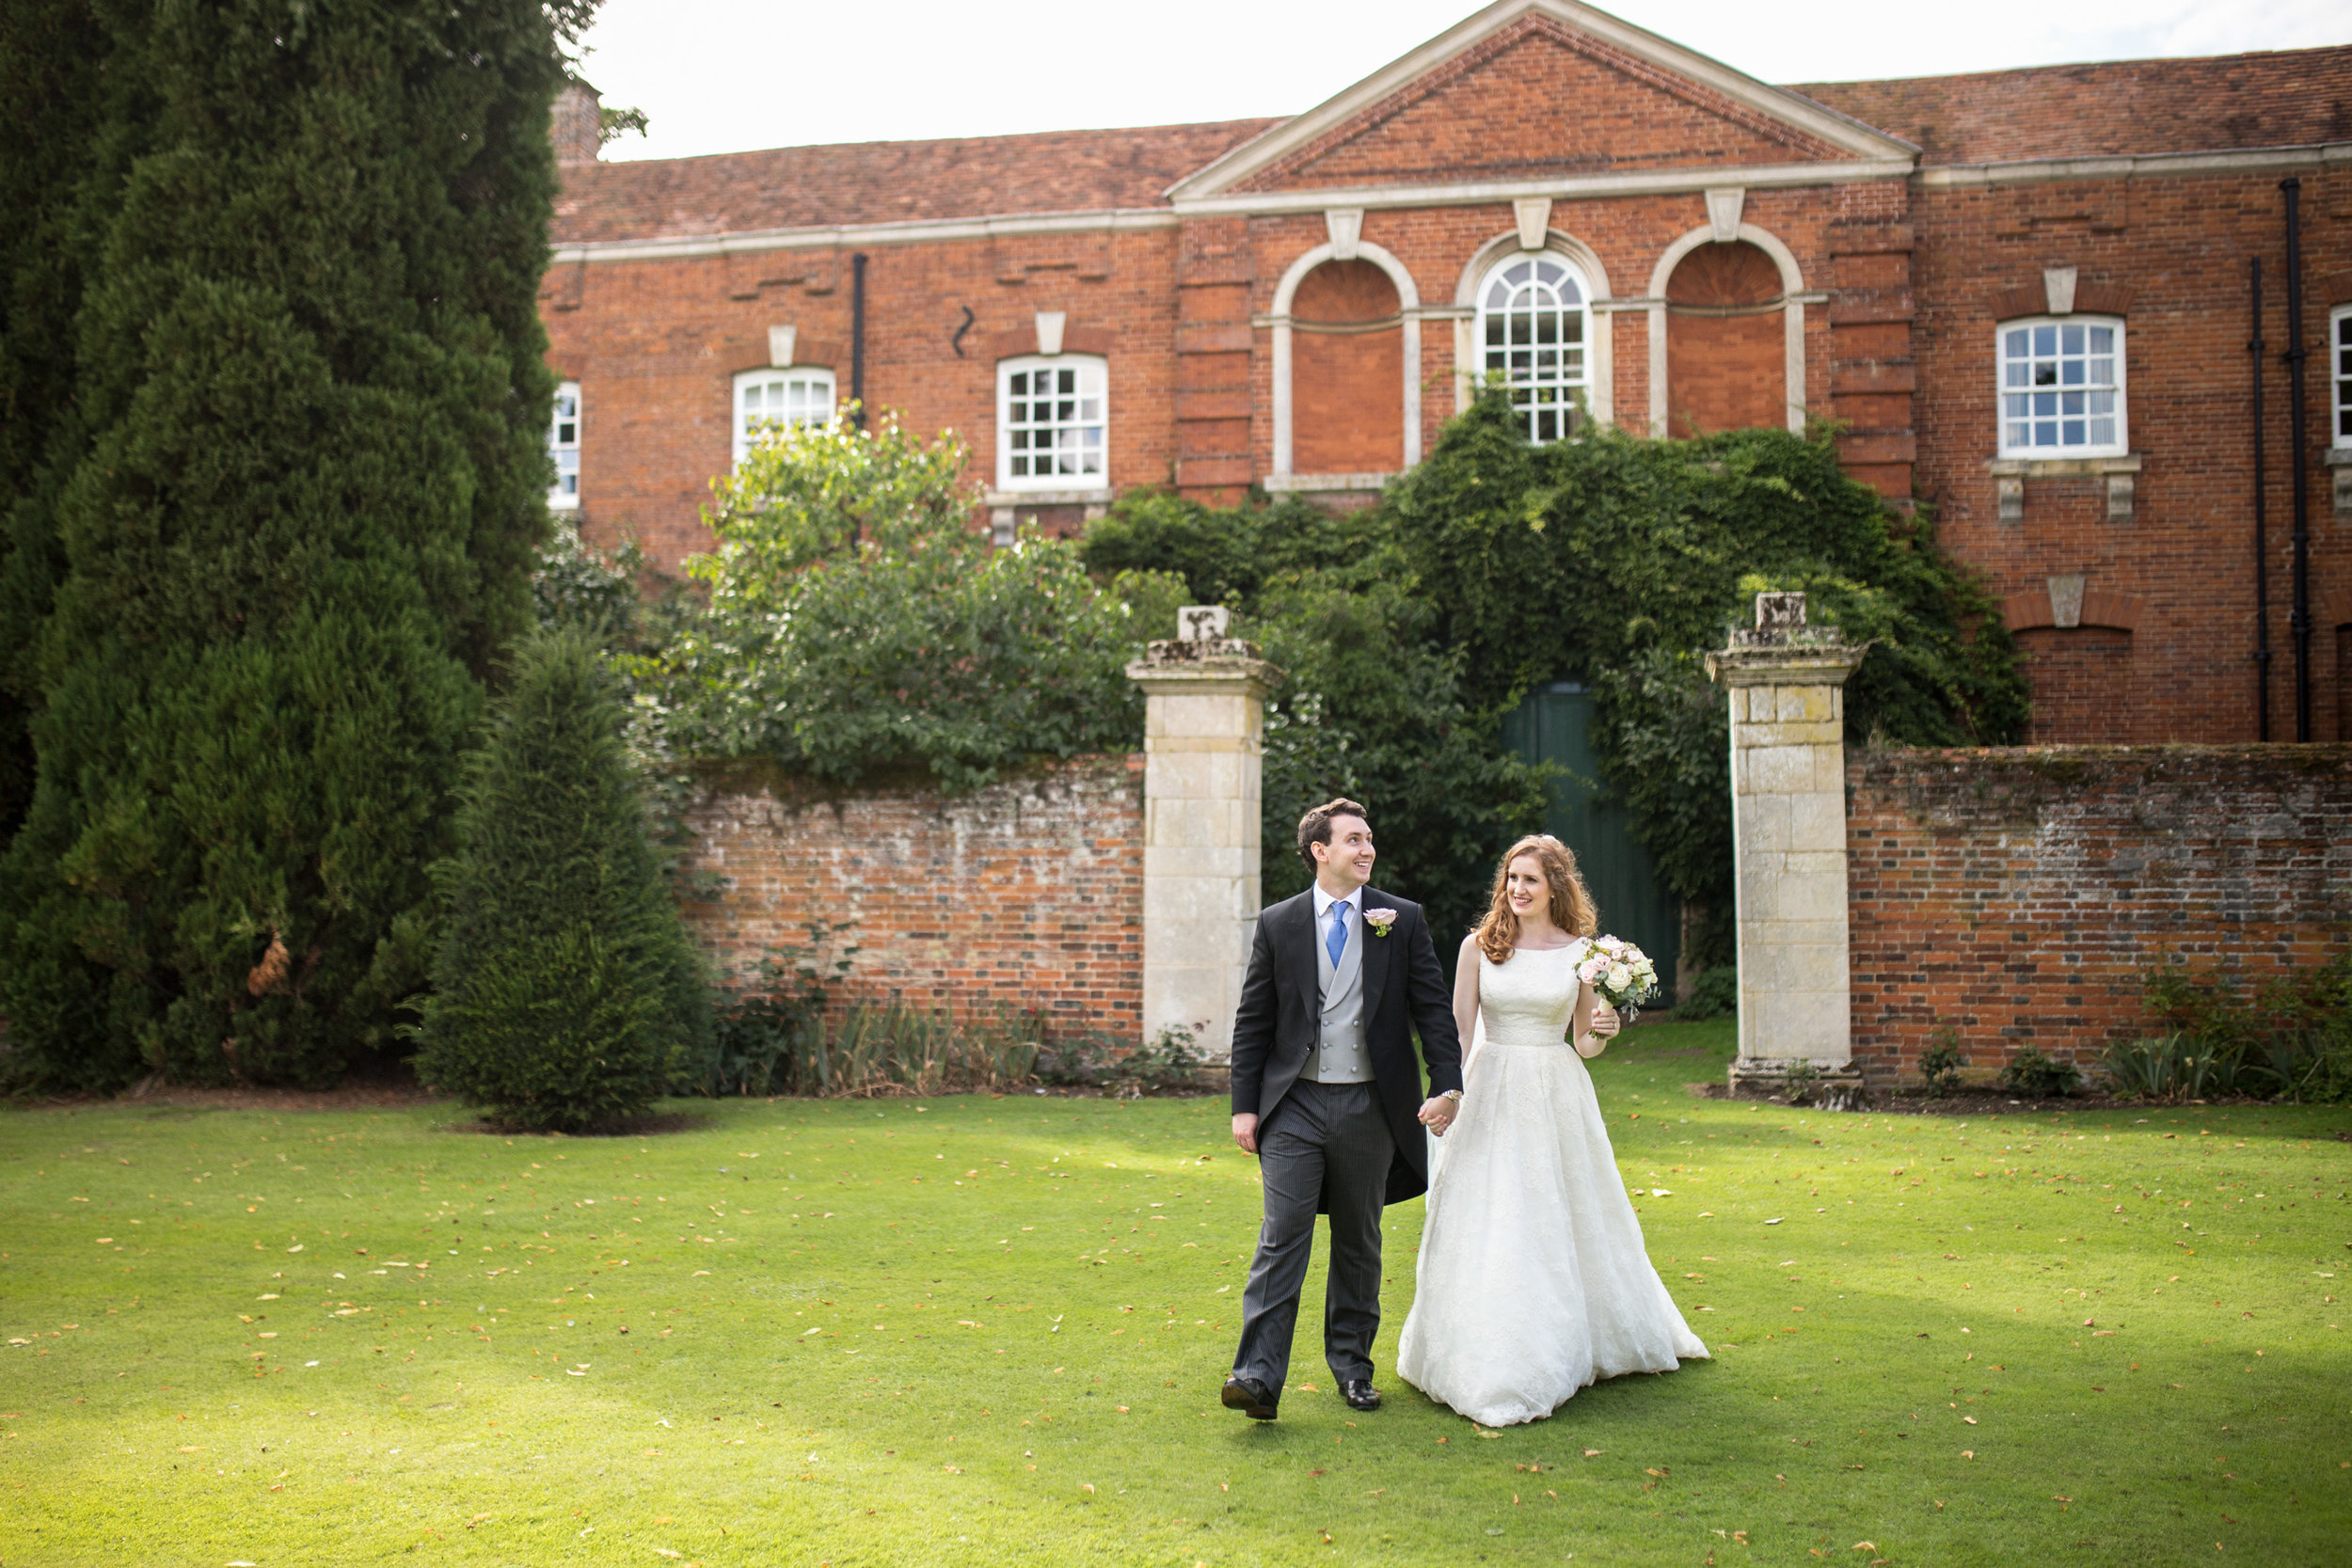 Couple, Chicheley Hall, Big Day, Sunset, Evening, Summer Wedding,